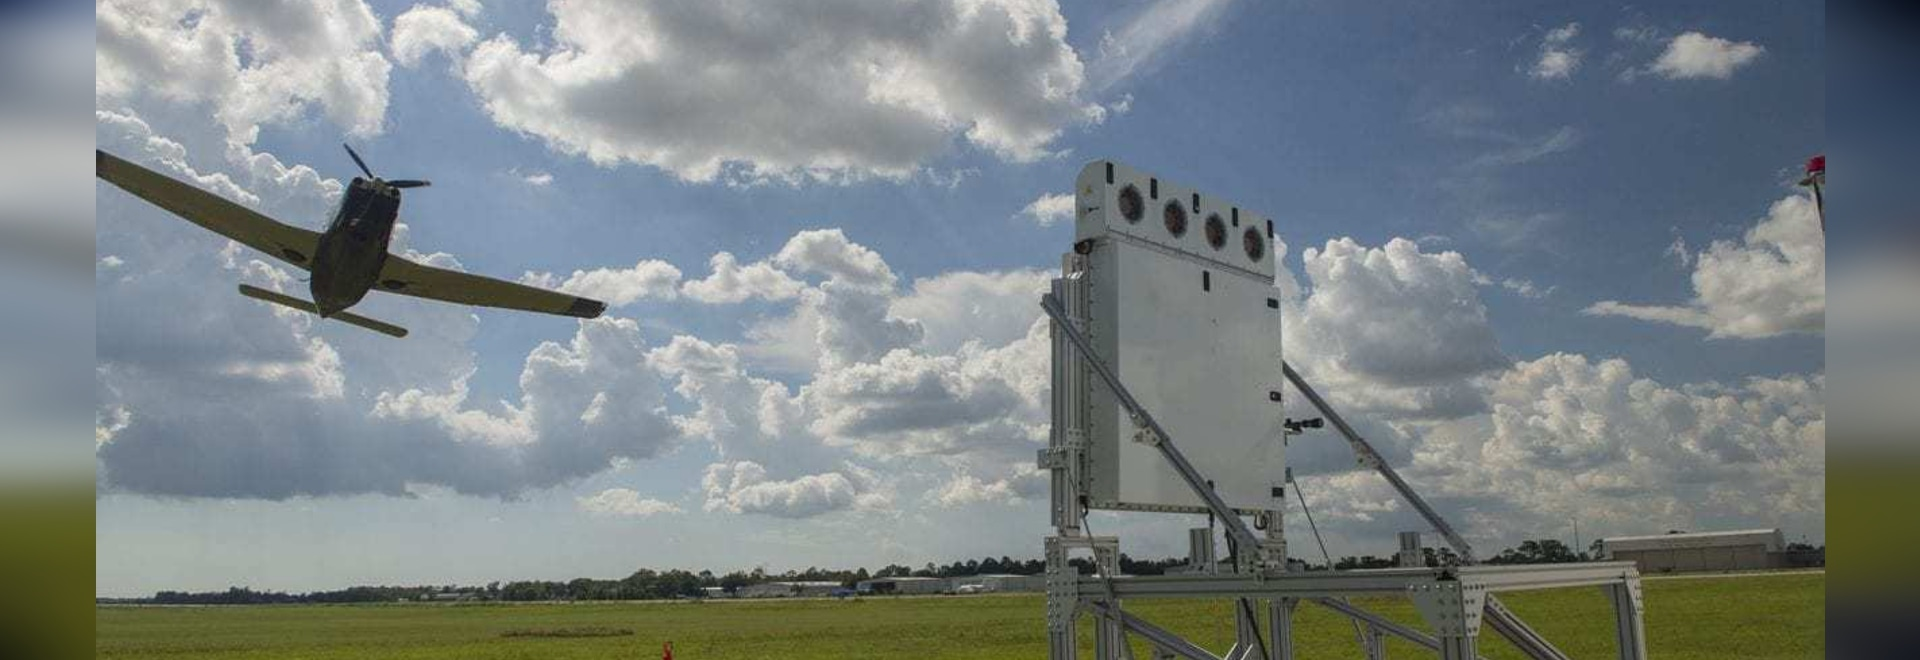 A Raytheon Skyler low-power radar array. (Raytheon)